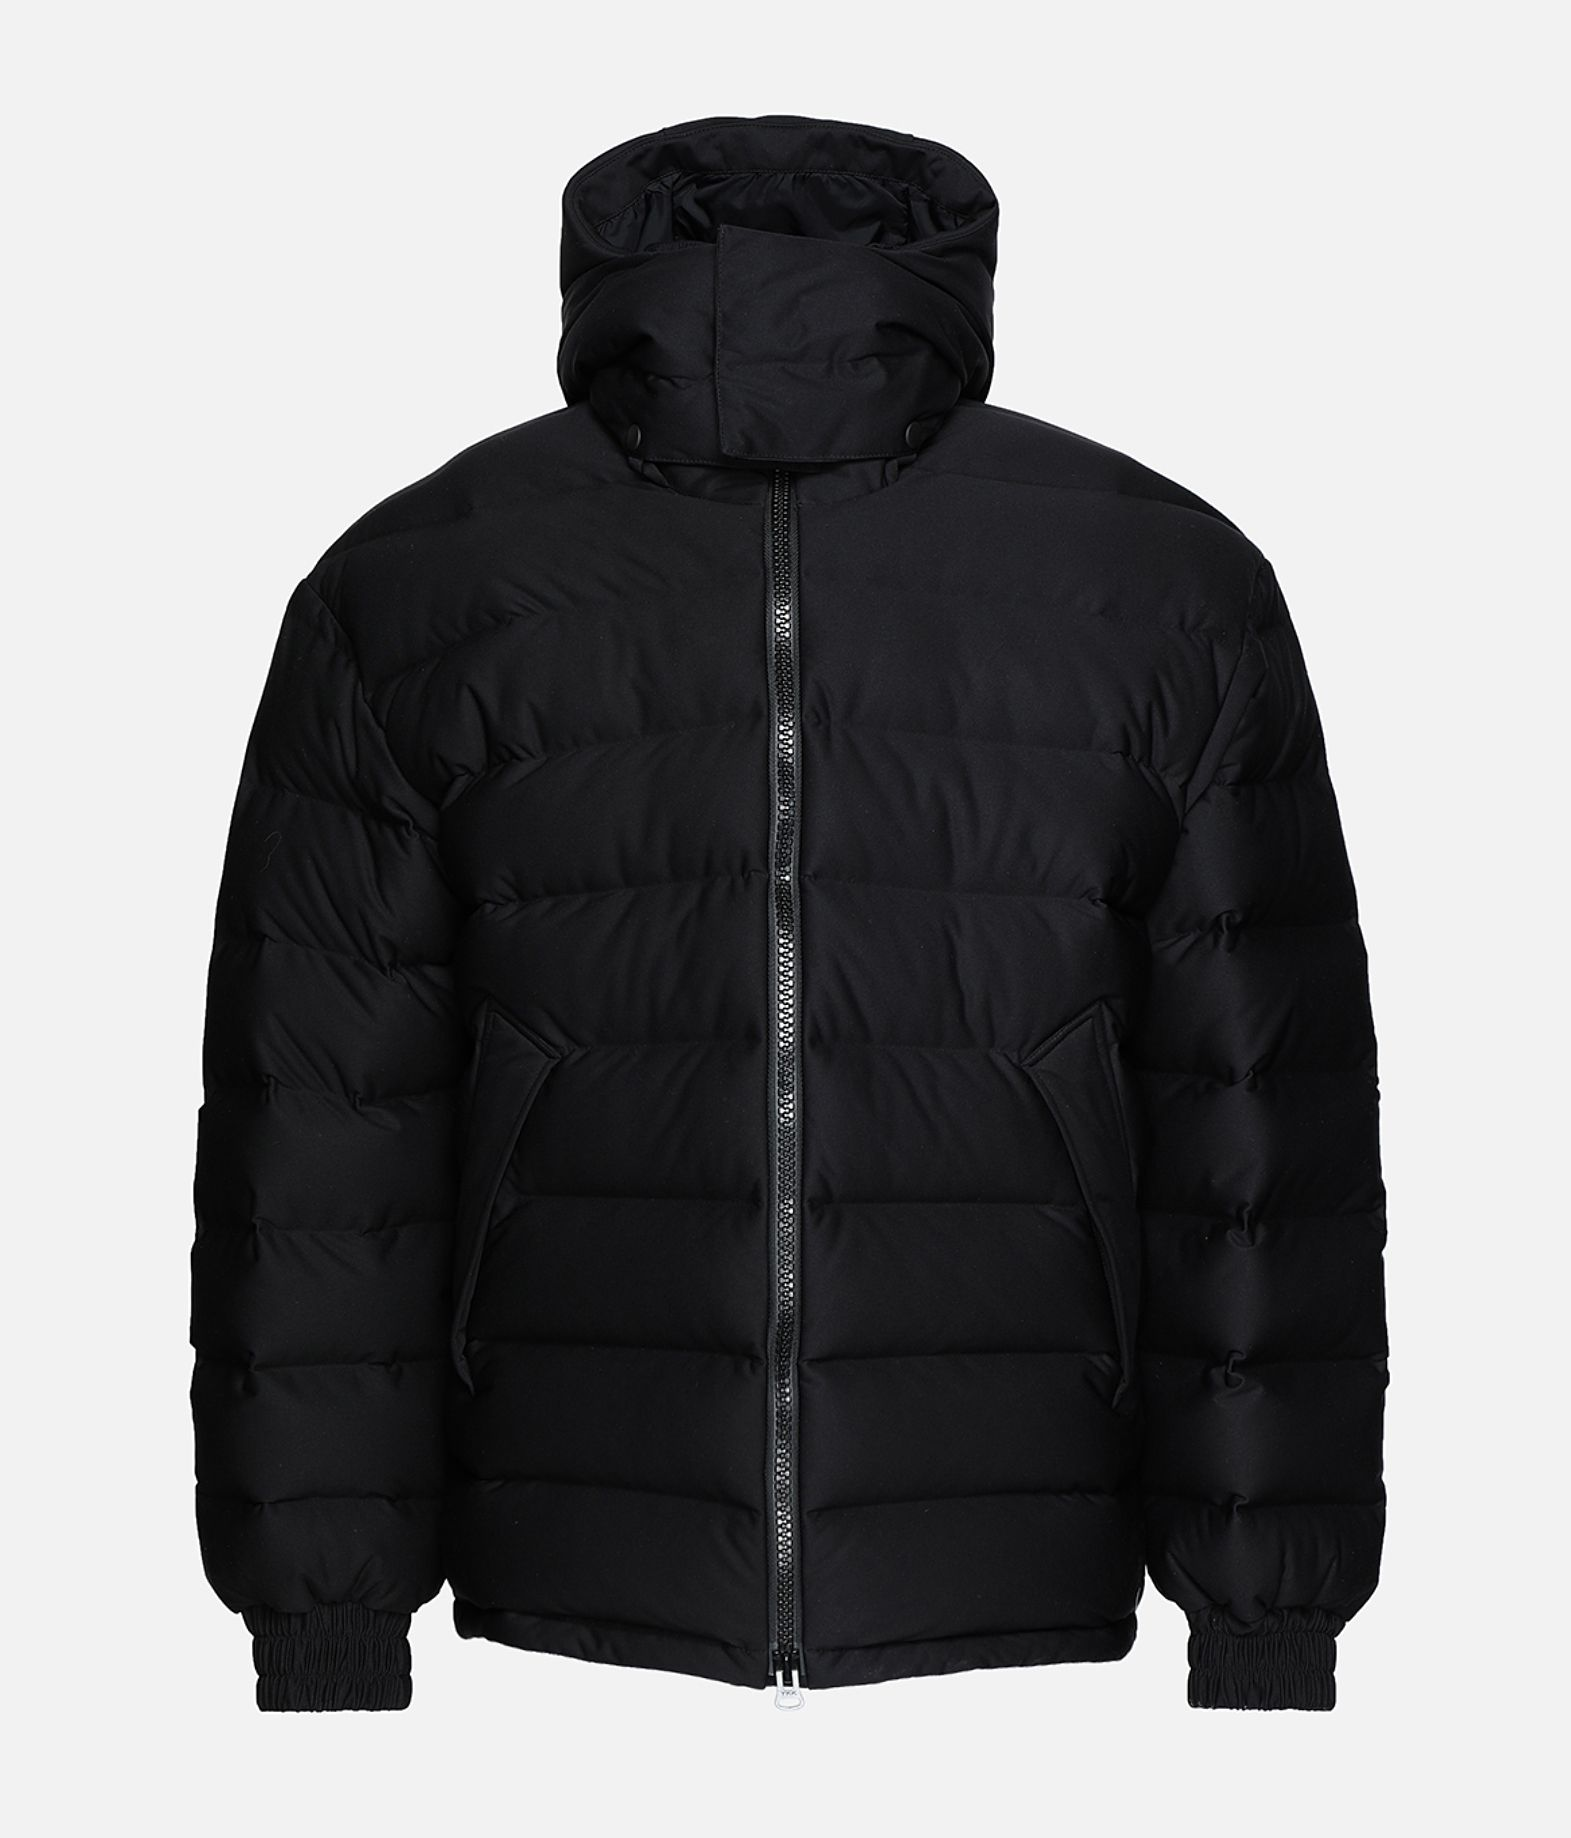 Y-3 Y-3 Seamless Hooded Down Jacket Down jacket Man f